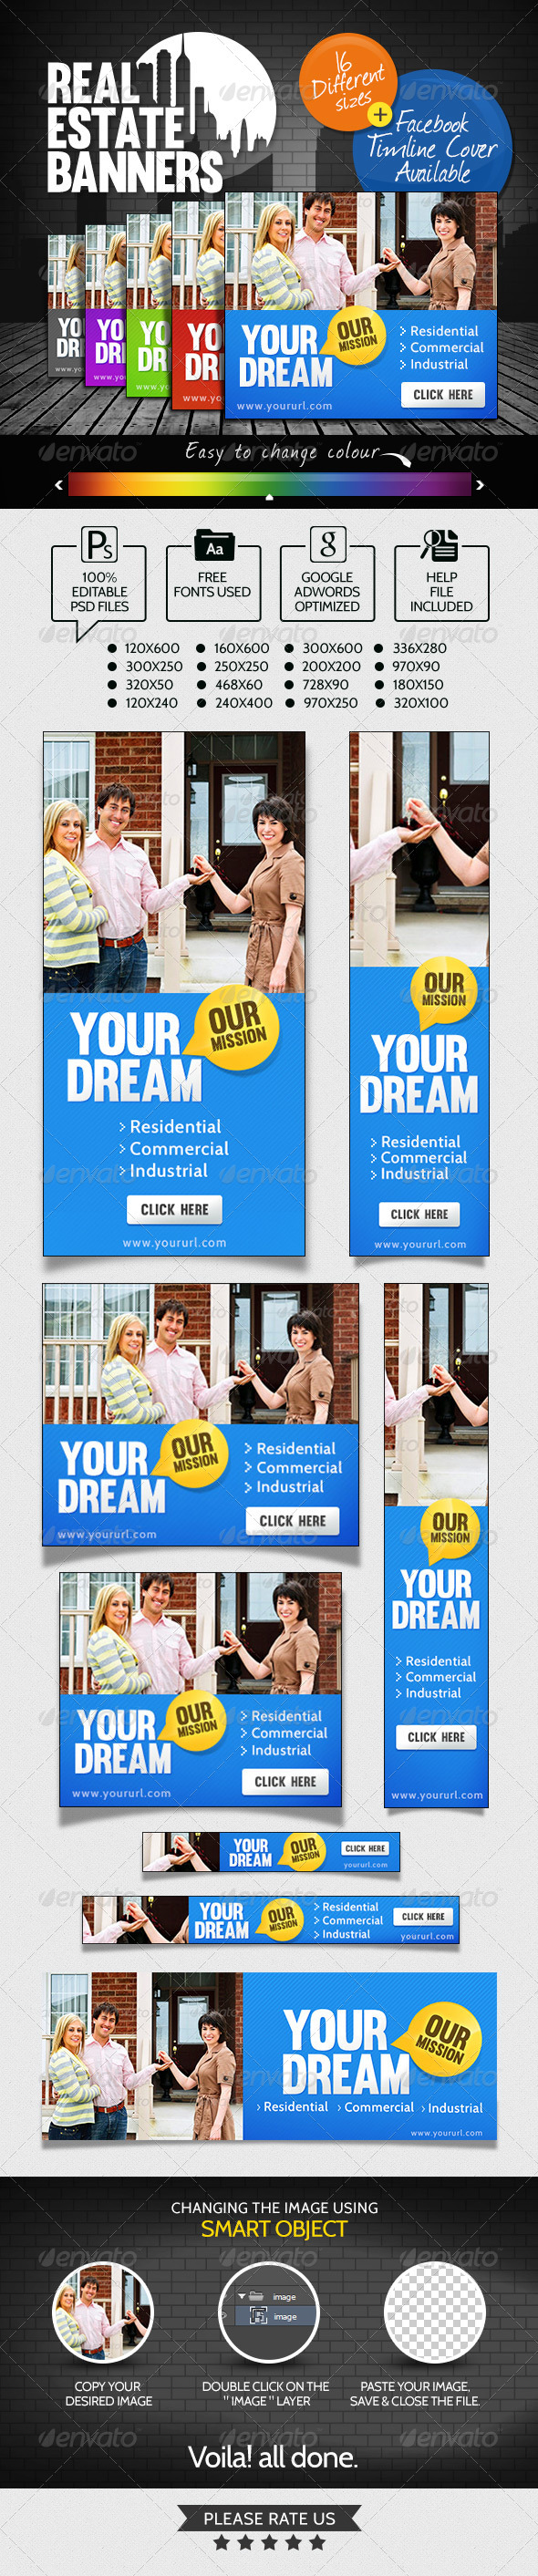 Real Estate Banner Set - Banners & Ads Web Elements